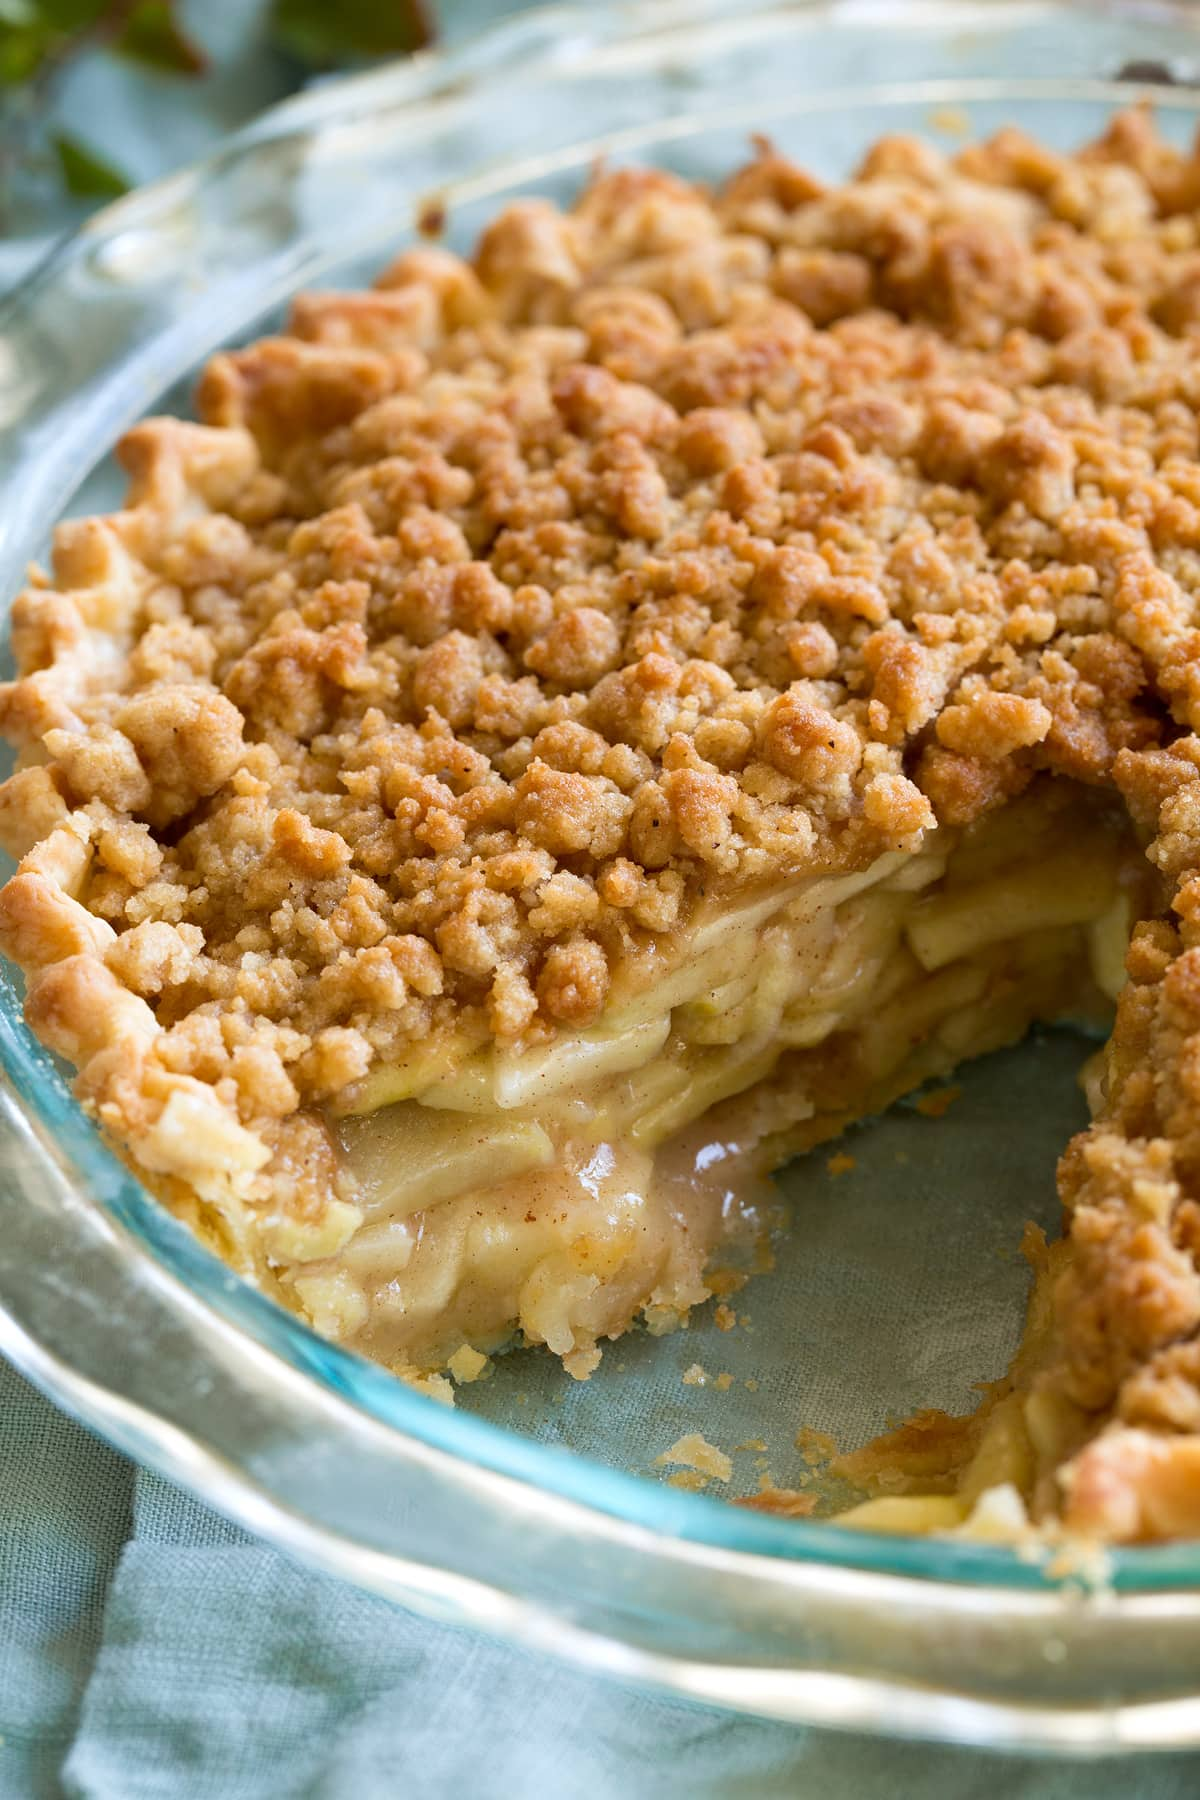 Close up image of Dutch apple pie in a glass pie pan.